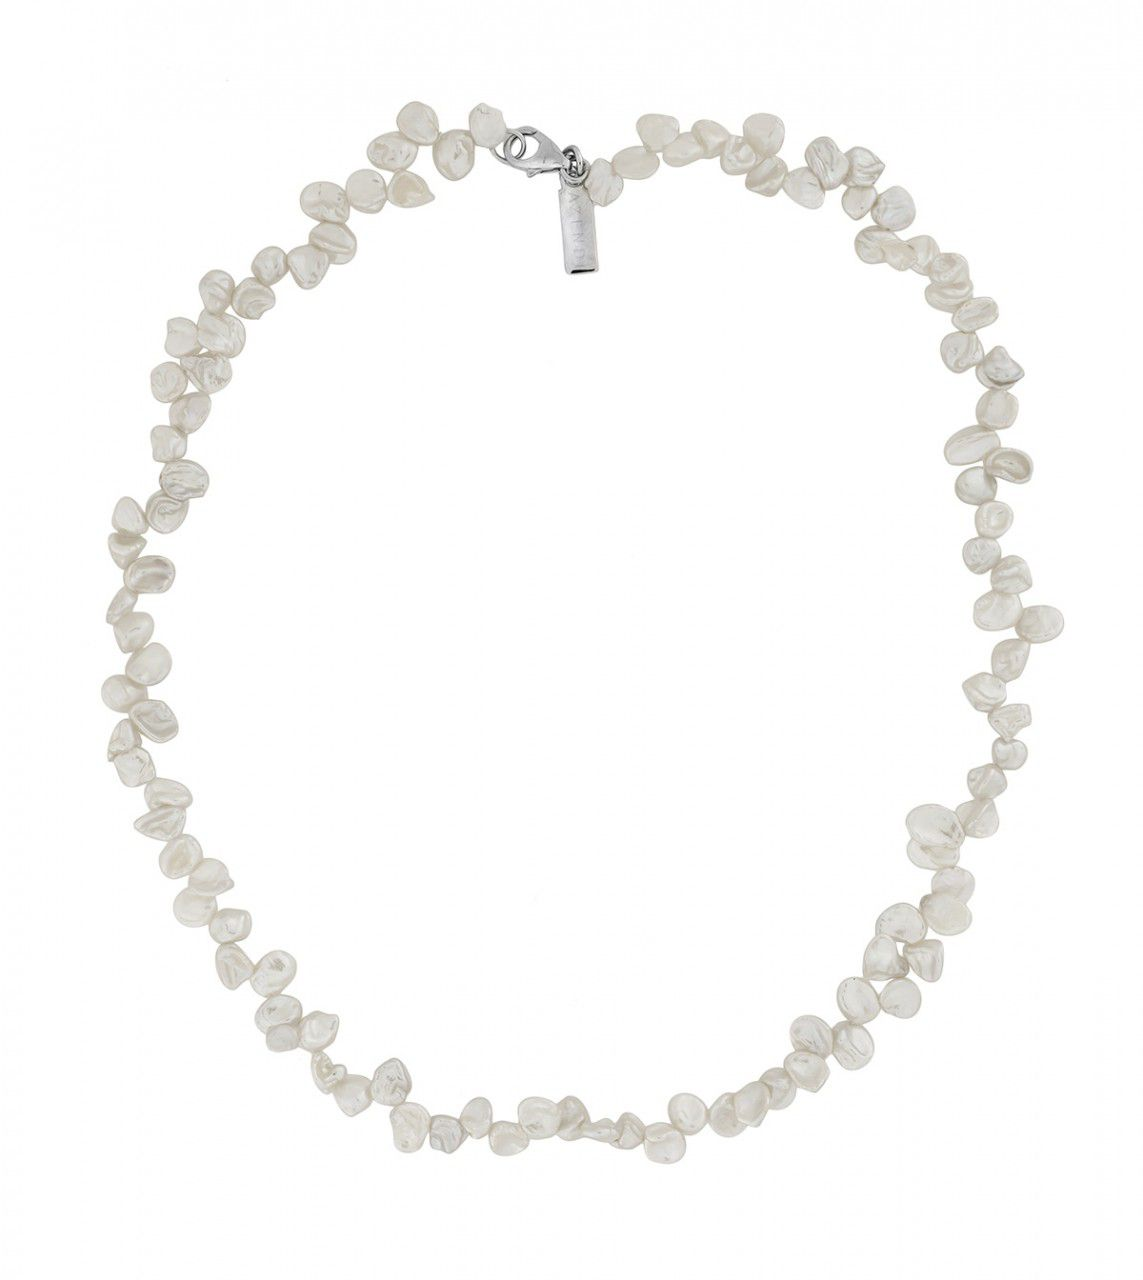 White Freshwater Keshi Pearl Necklace